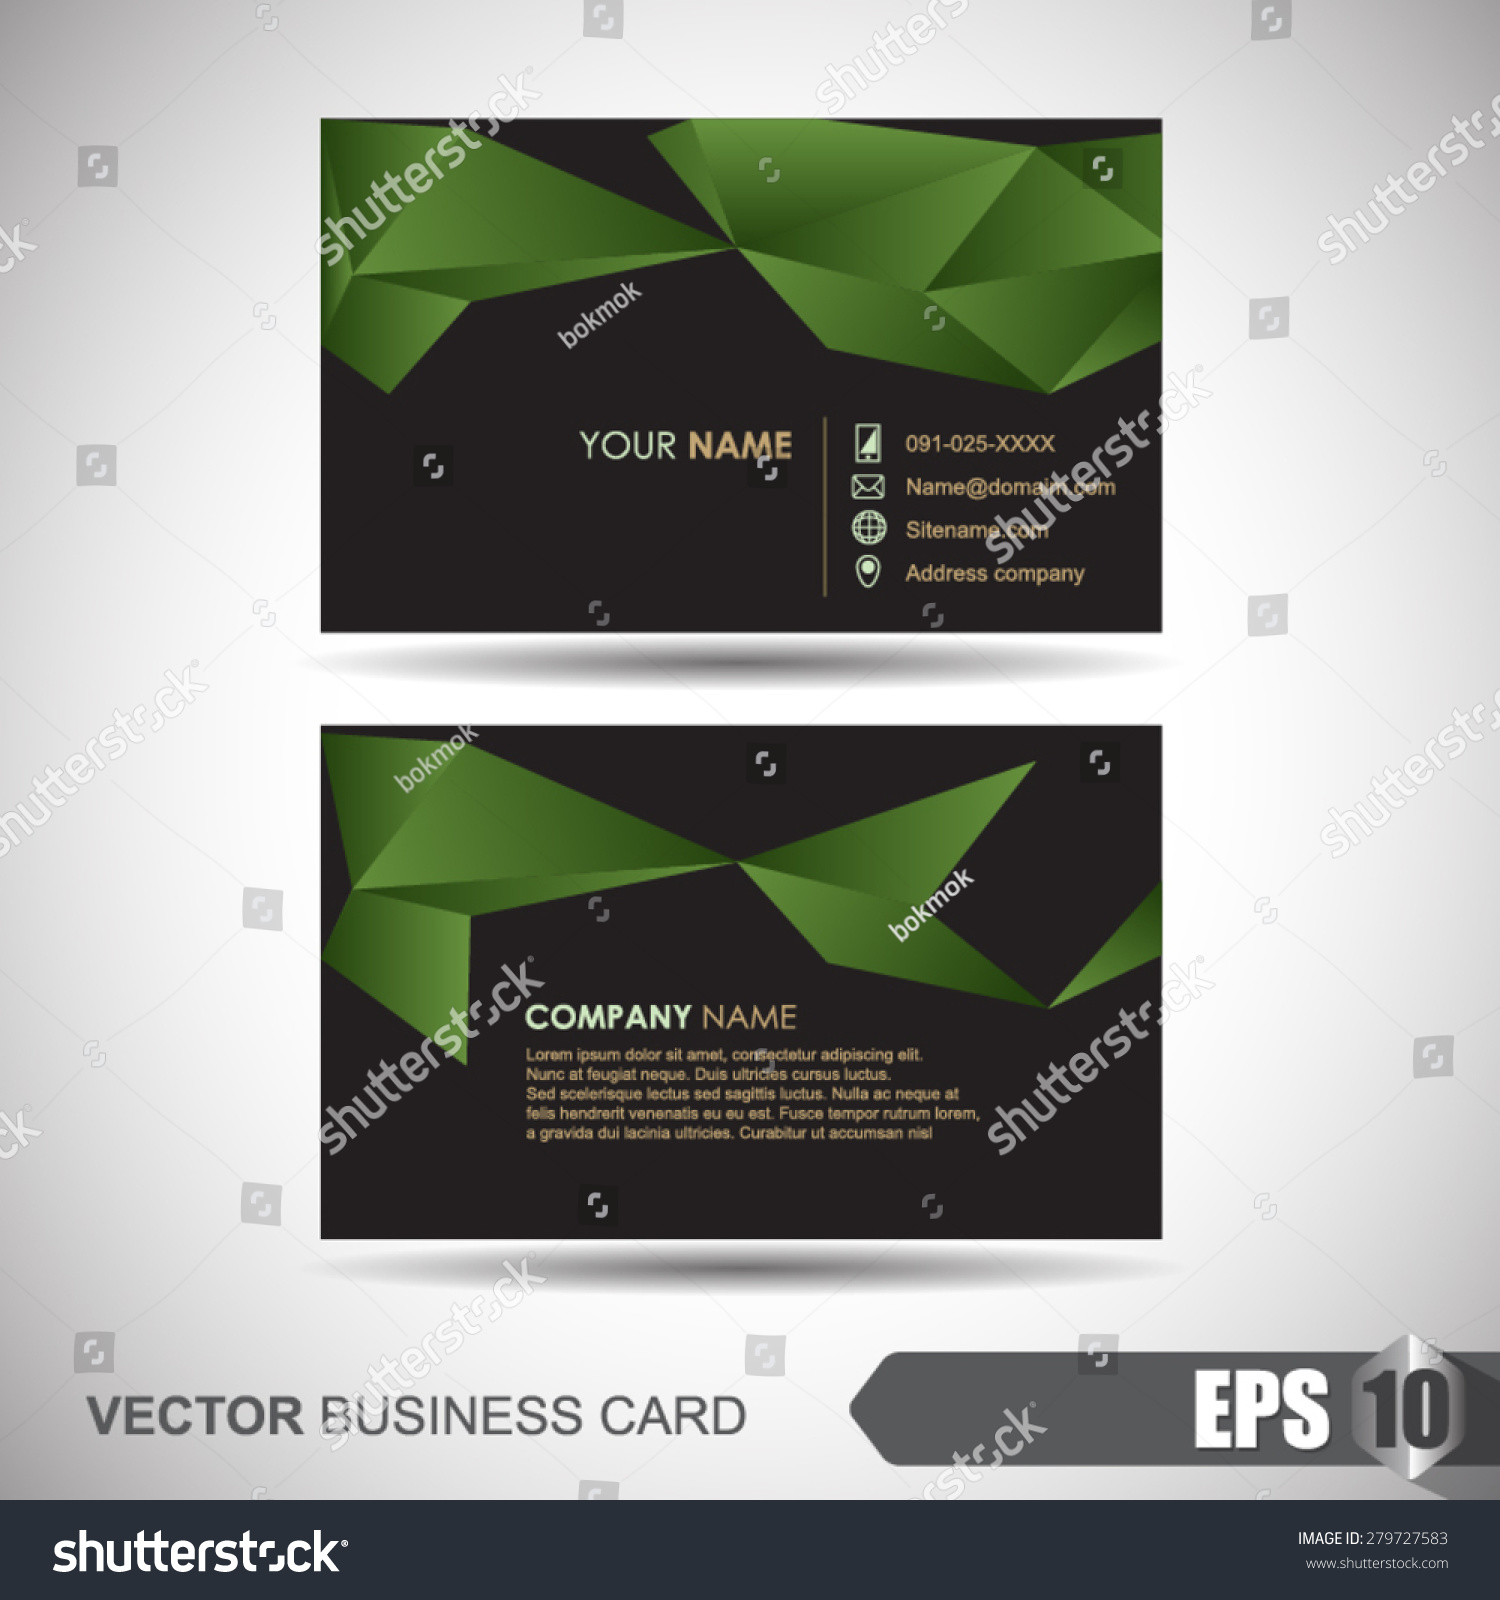 Business Card Abstract Background Origami Stock Vector 279727583 ...